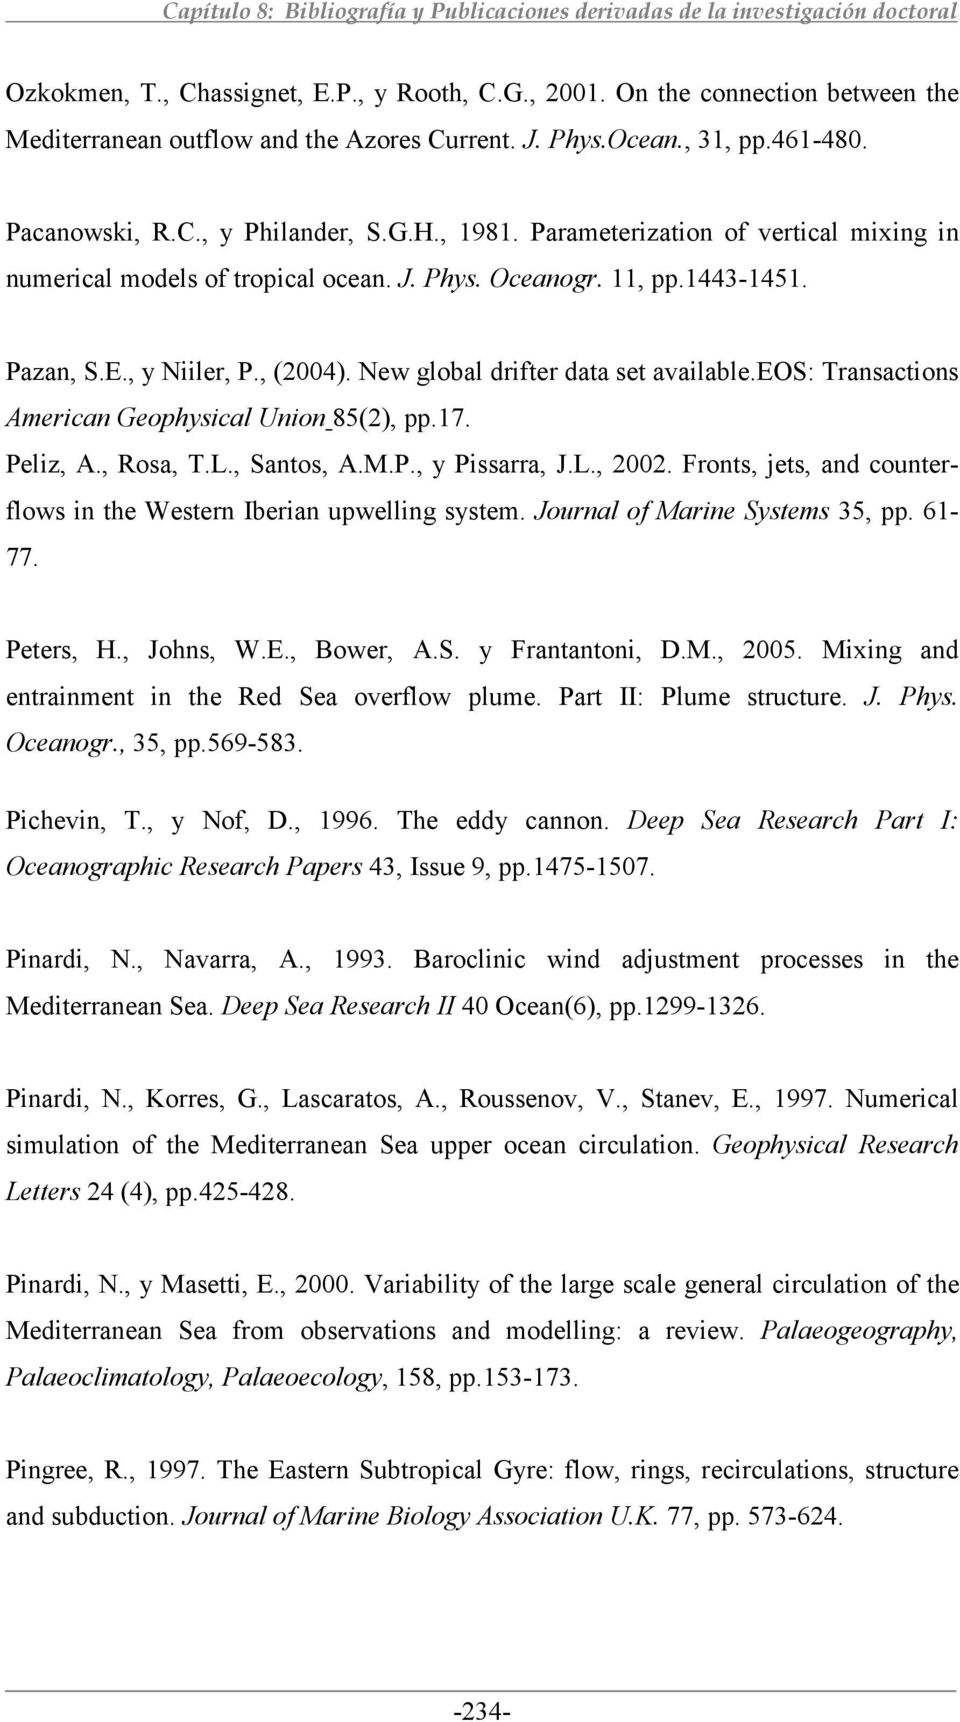 eos: Transactions American Geophysical Union 85(2), pp.17. Peliz, A., Rosa, T.L., Santos, A.M.P., y Pissarra, J.L., 2002. Fronts, jets, and counterflows in the Western Iberian upwelling system.